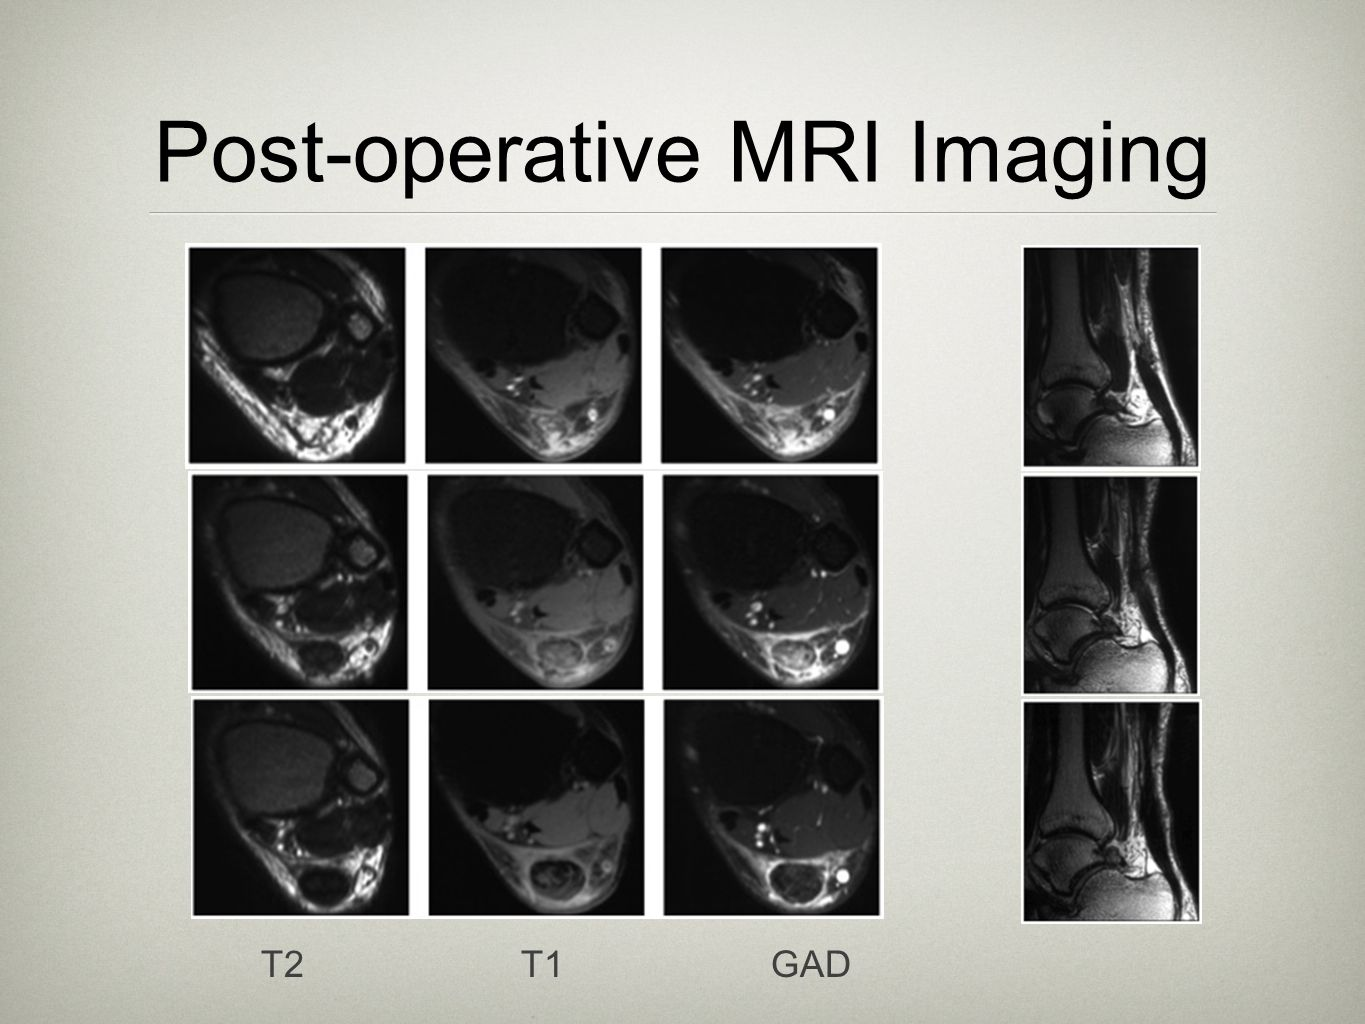 Post-operative MRI Imaging